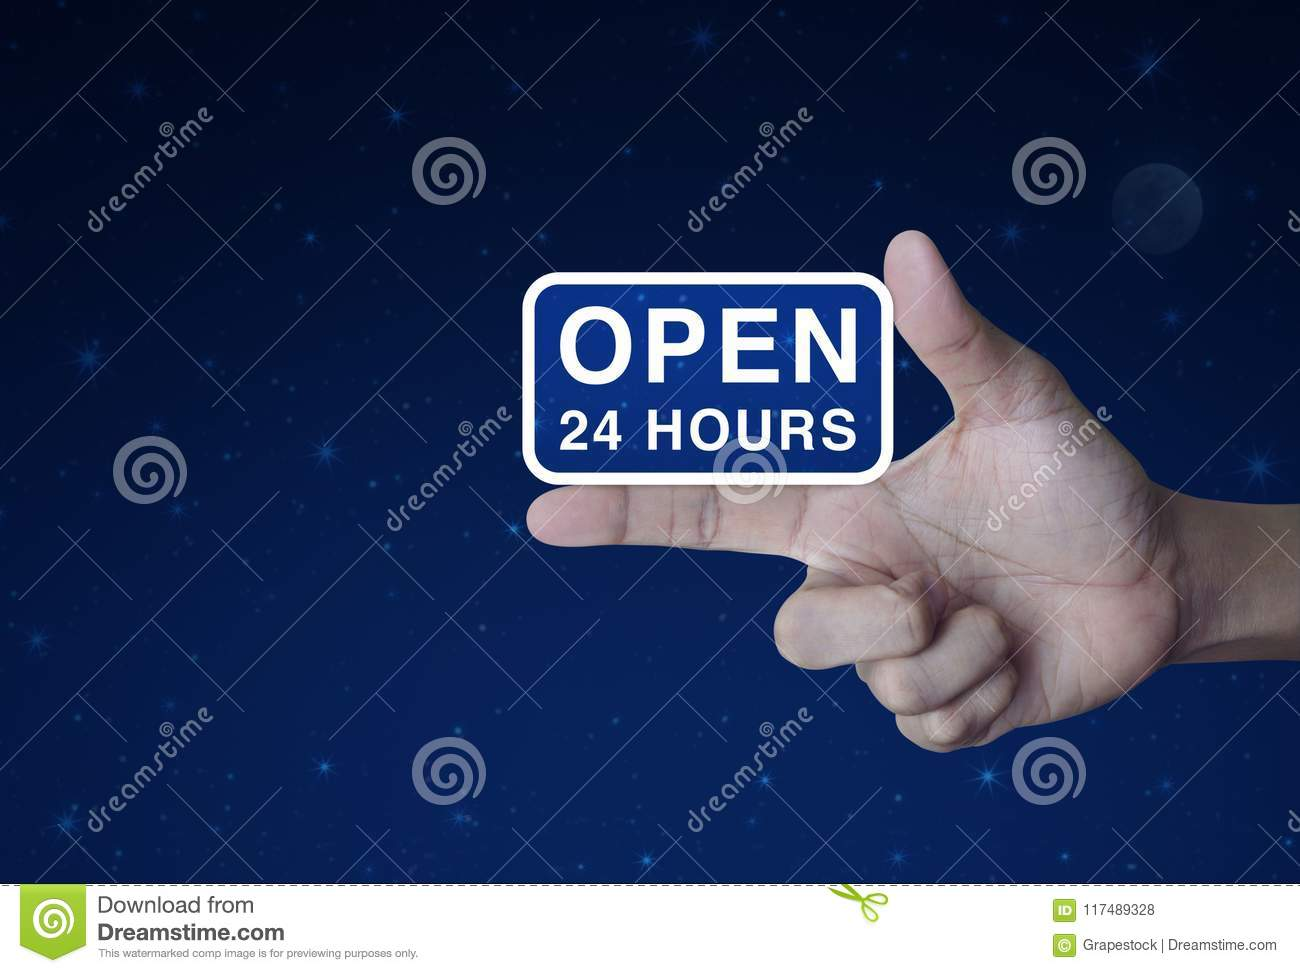 Open 24 hours icon on finger